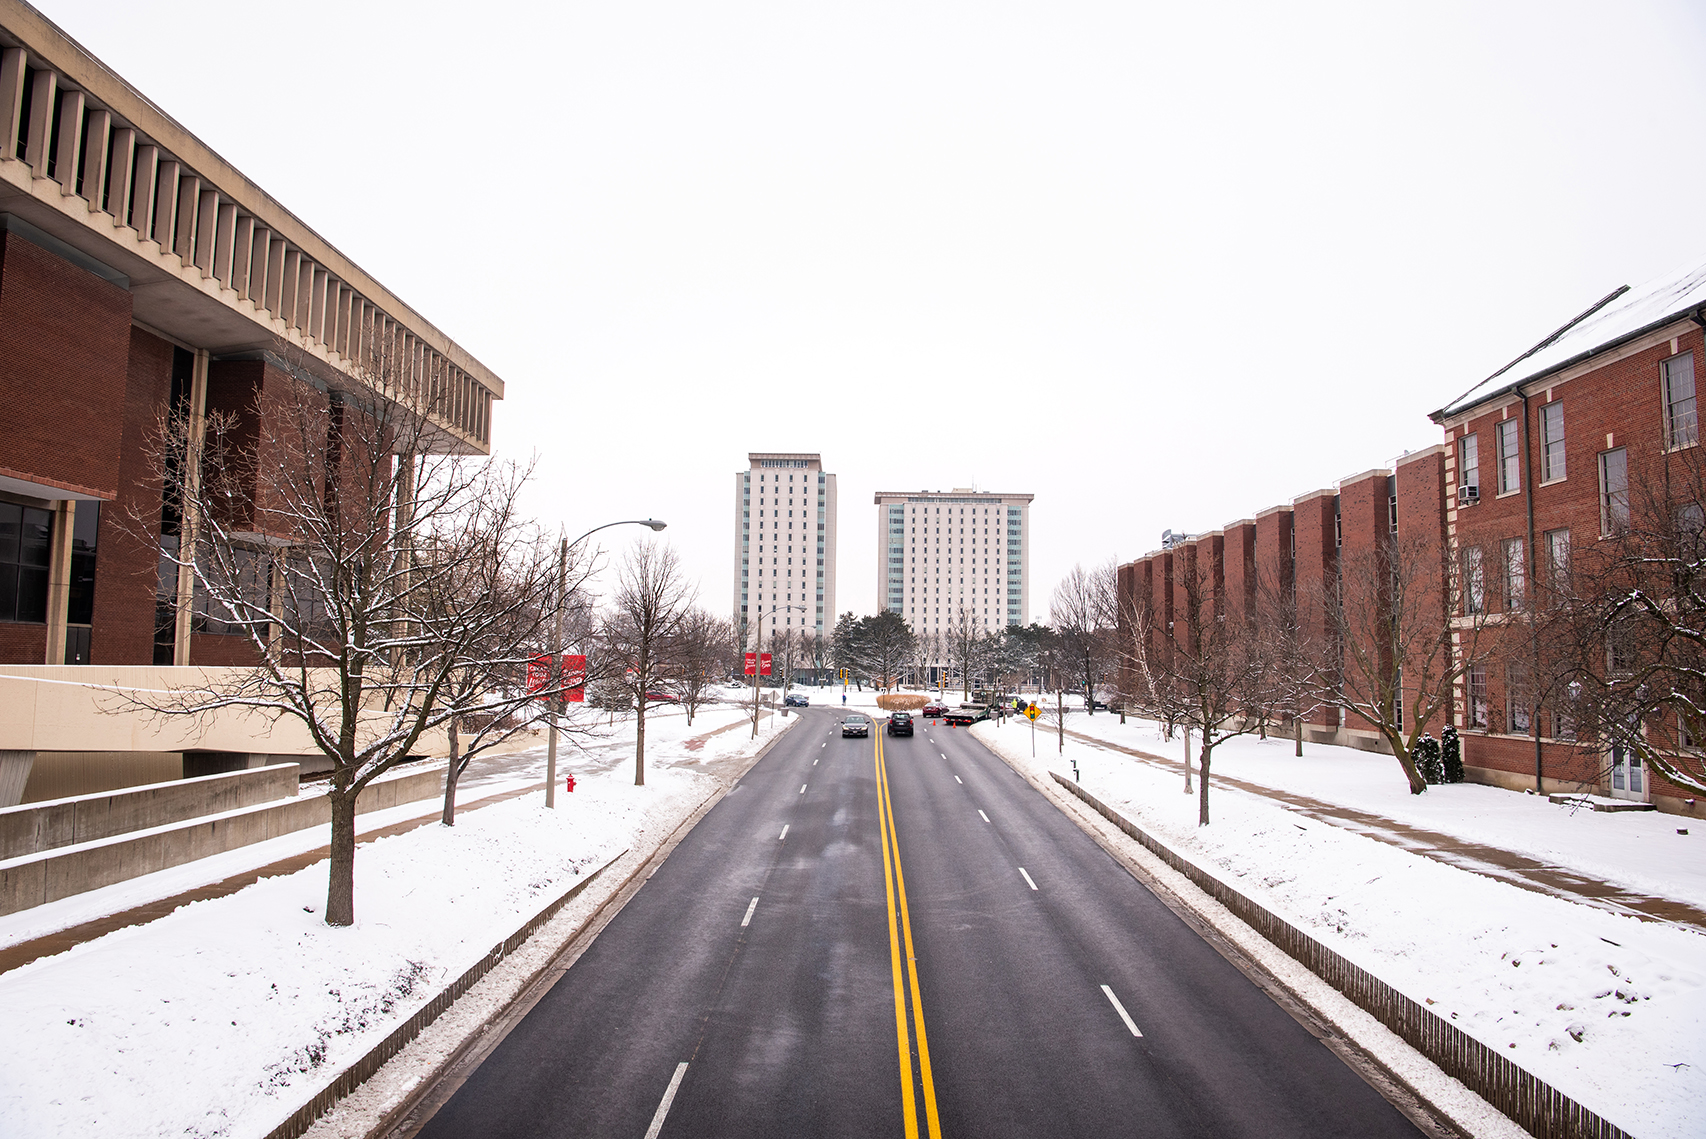 College Avenue looking toward Hewett and Manchester Halls